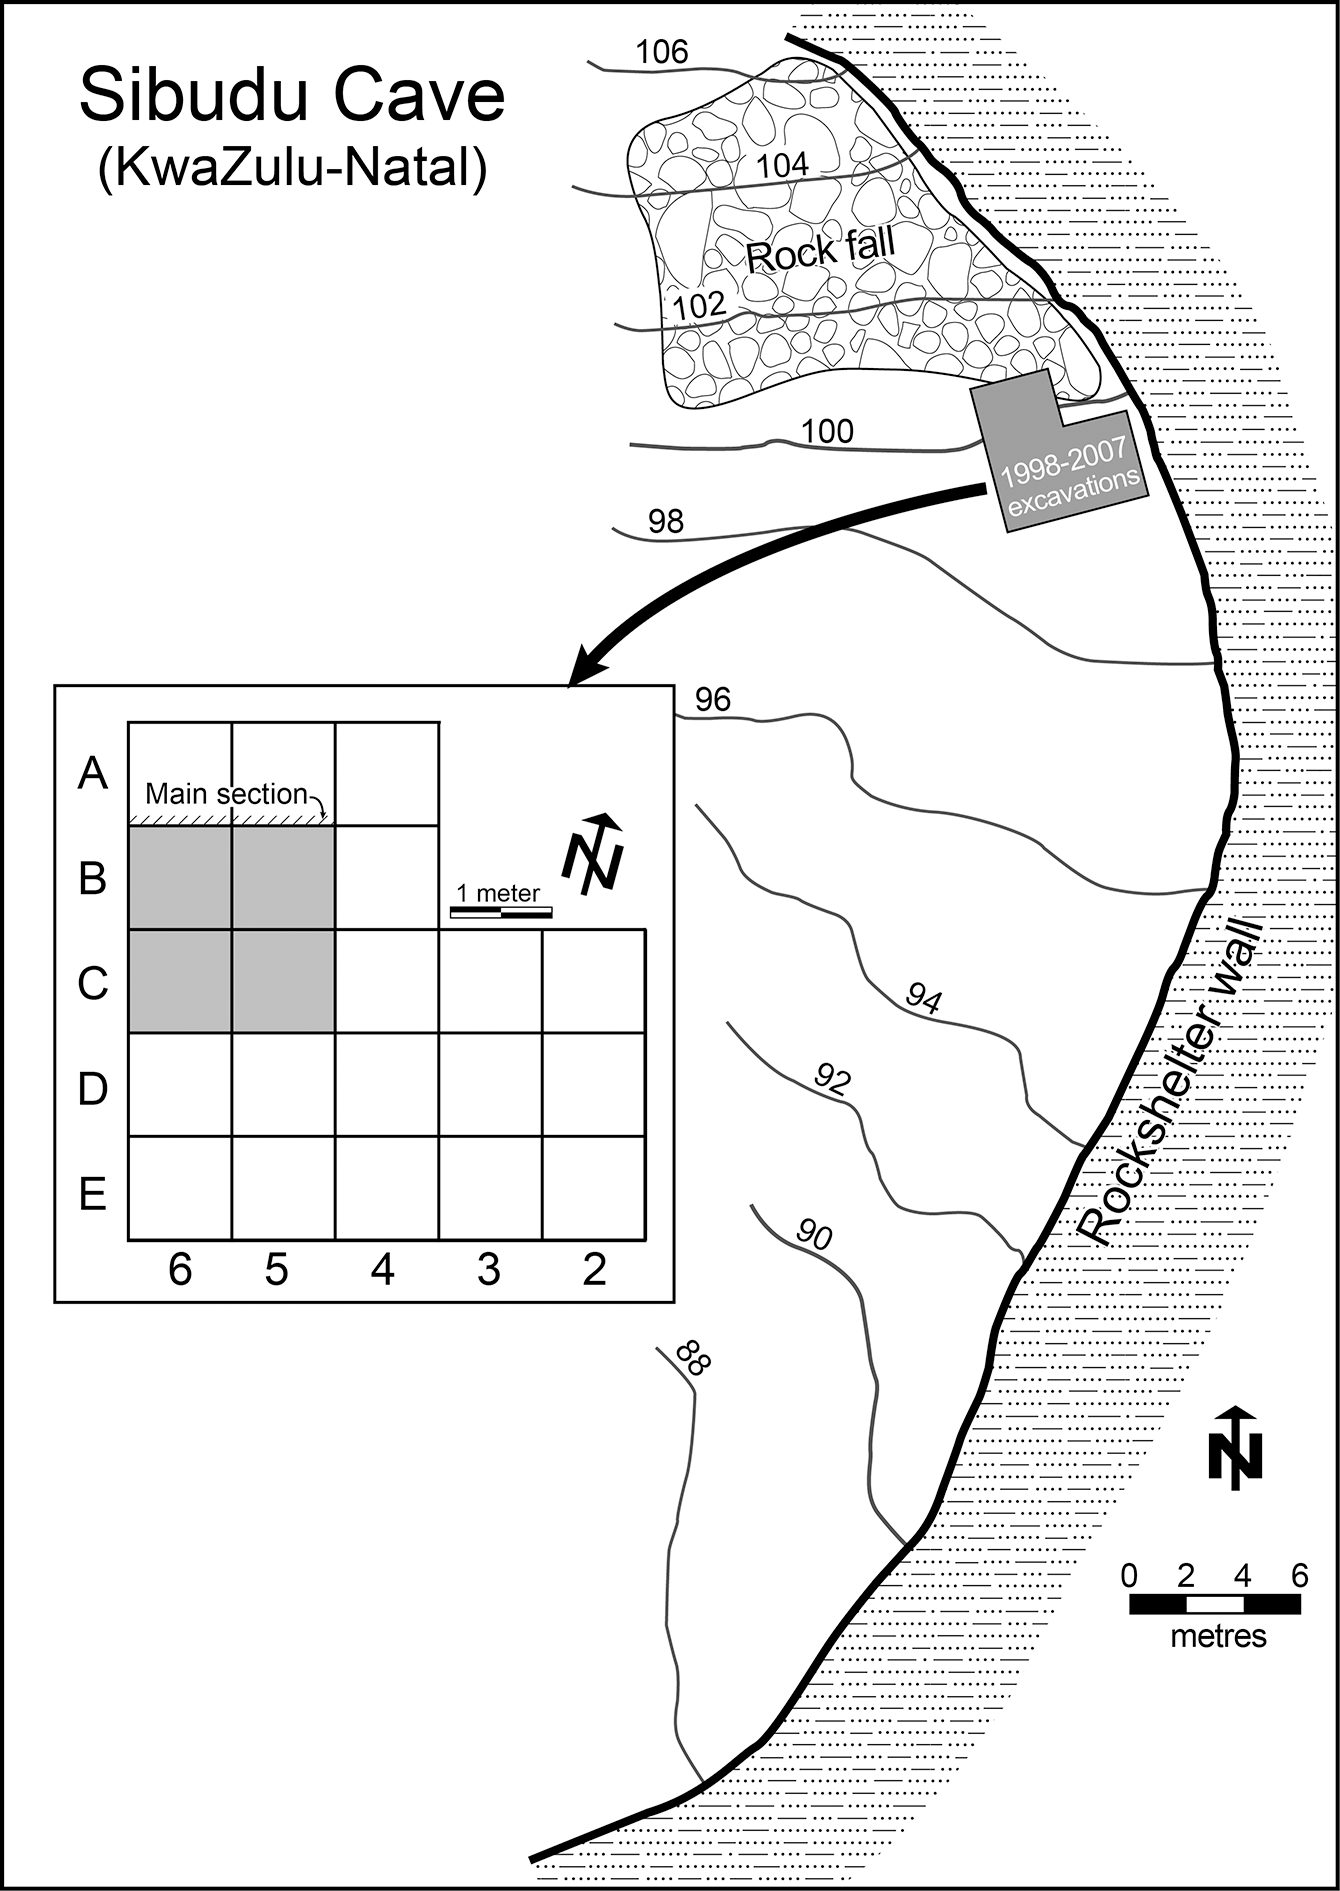 Fig 2.  Sibudu: Plan of the site with elevations in meters above sea level, the excavation grid and location of main section.